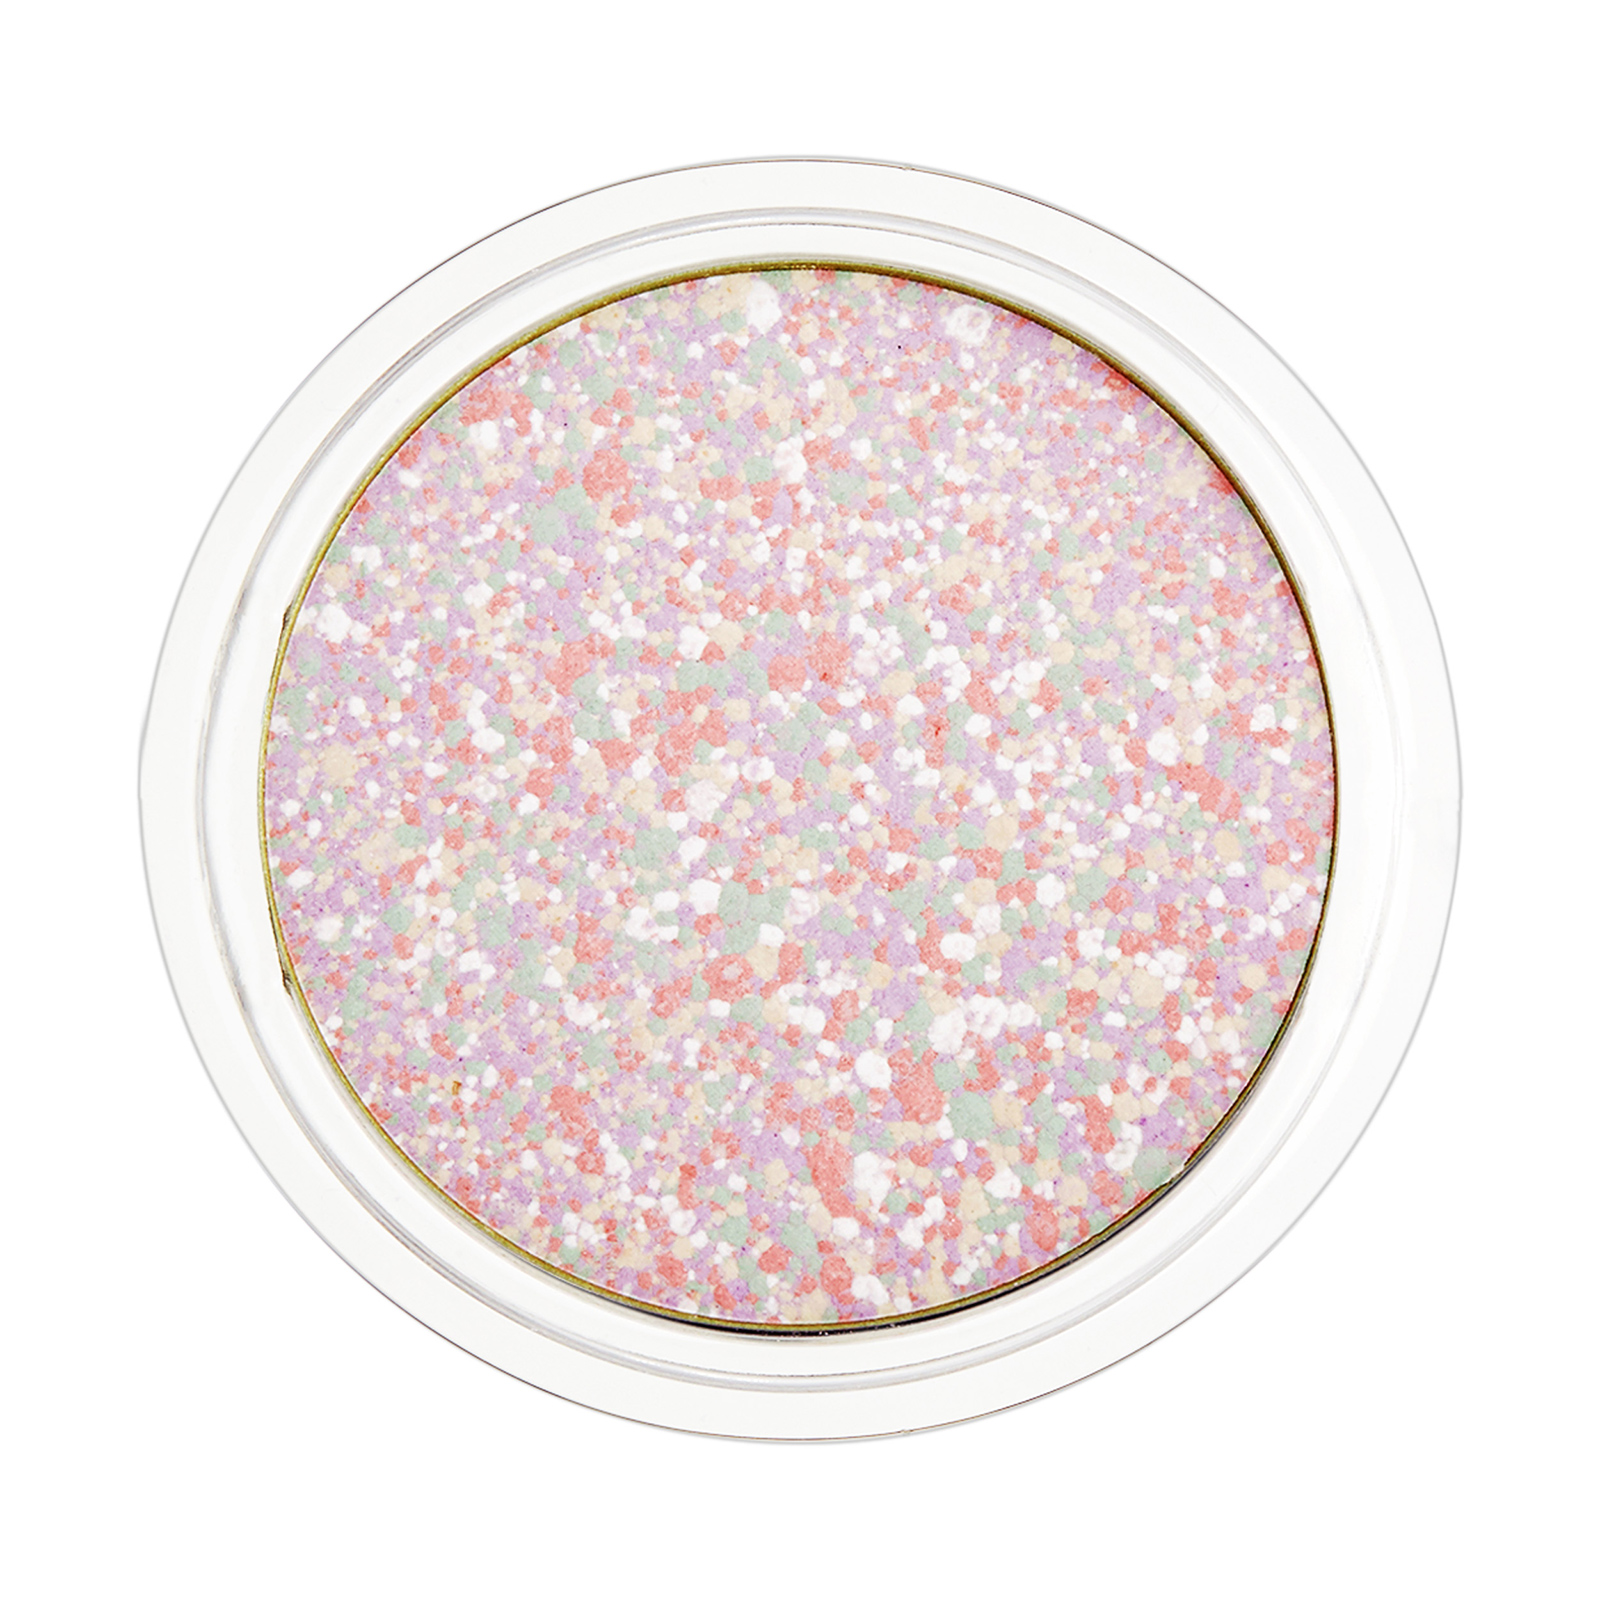 Guerlain Meteorites  Voyage Exceptional Compacted Pearls of Powder (Refill) #01 Mythic, 0.3oz, 11g